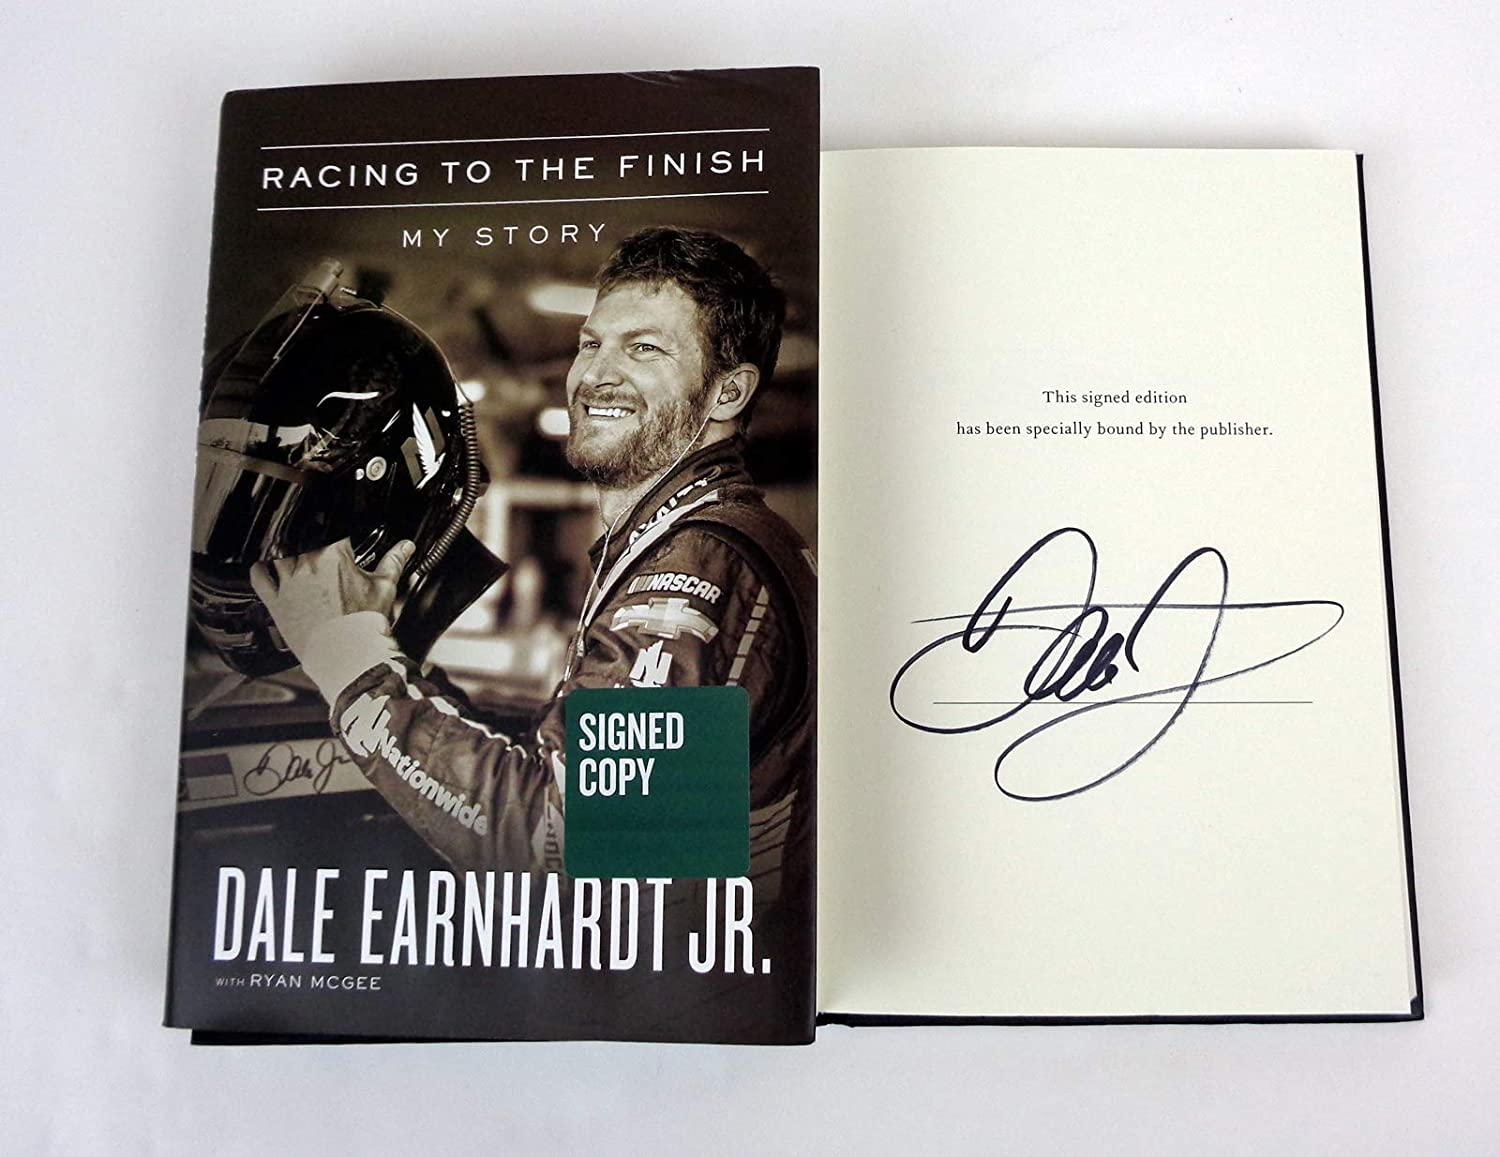 Dale Earnhardt Jr Signed Autograph Racing To The Finish My Story 1st Edition Book COA